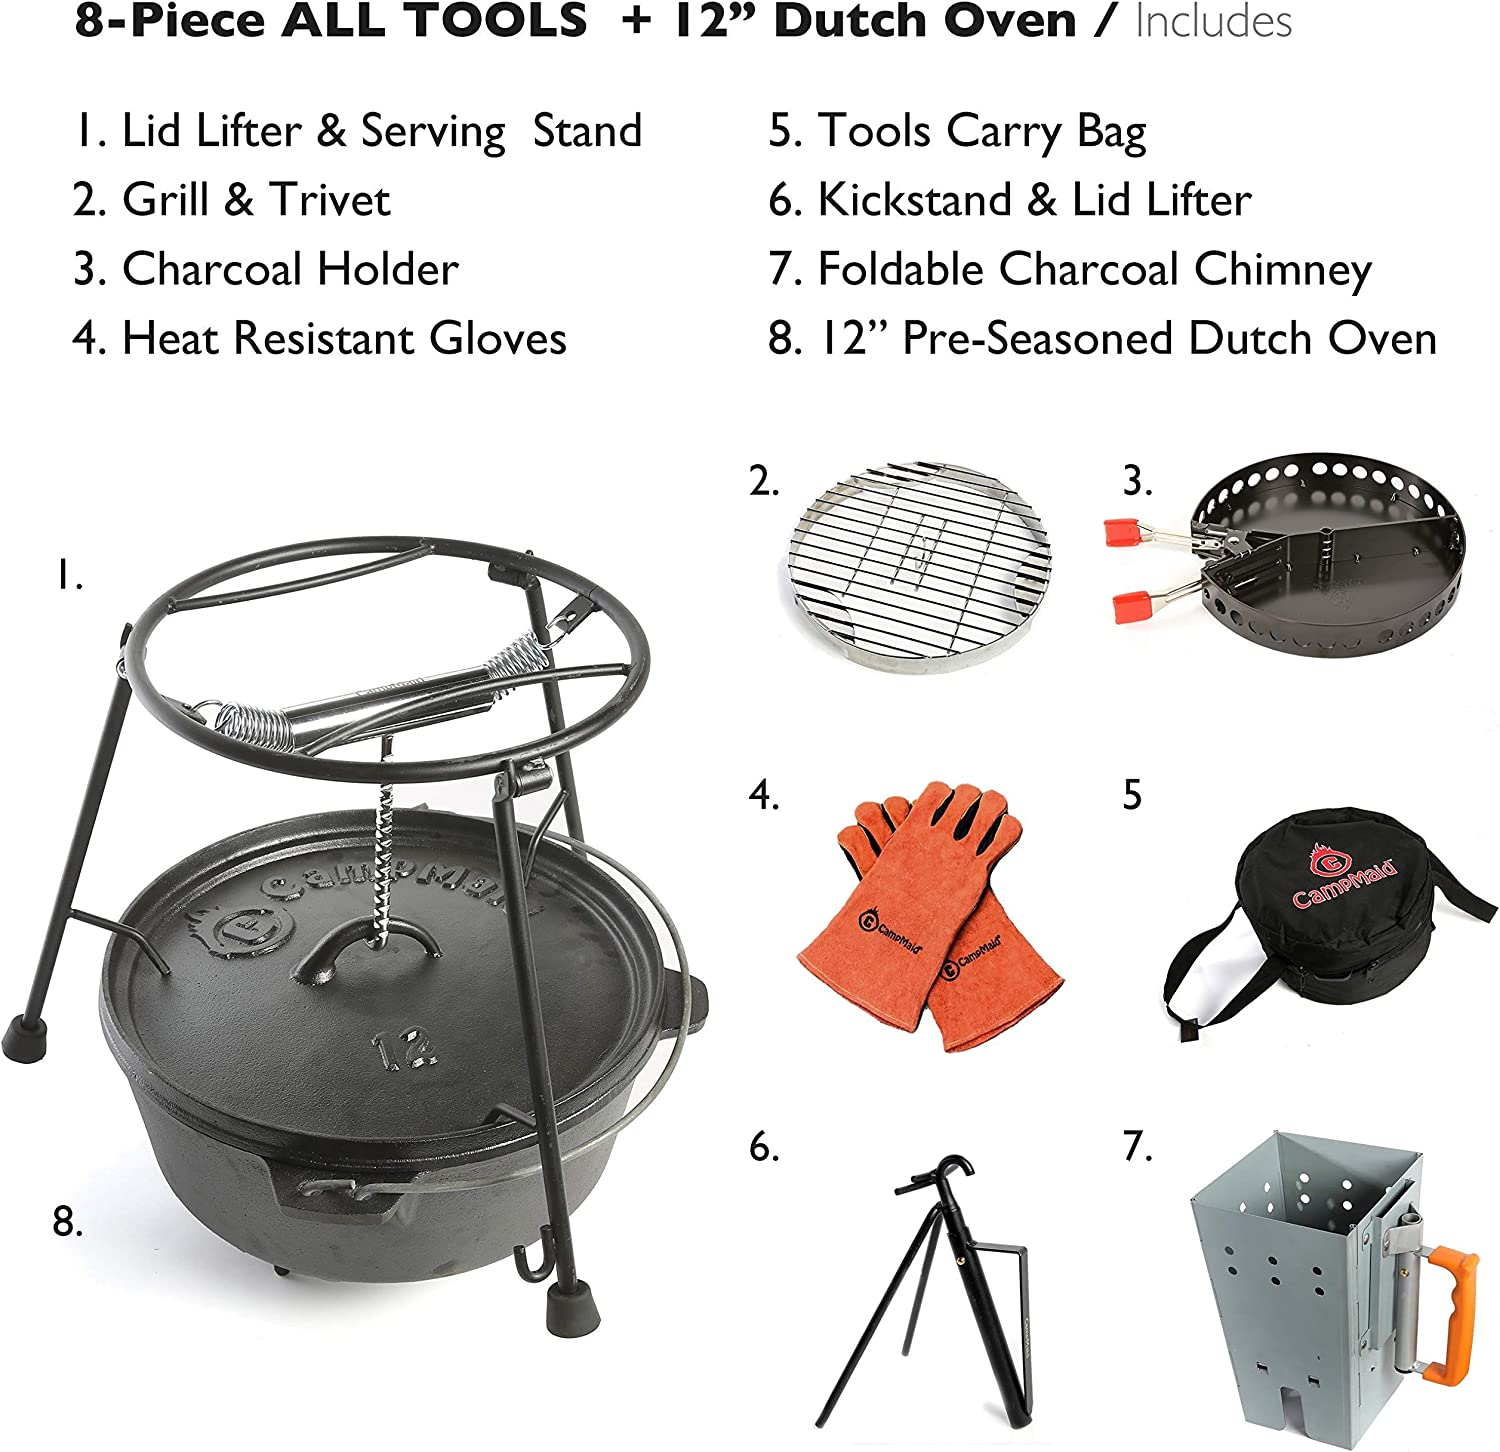 CampMaid 8-Piece Dutch Oven Set With 12